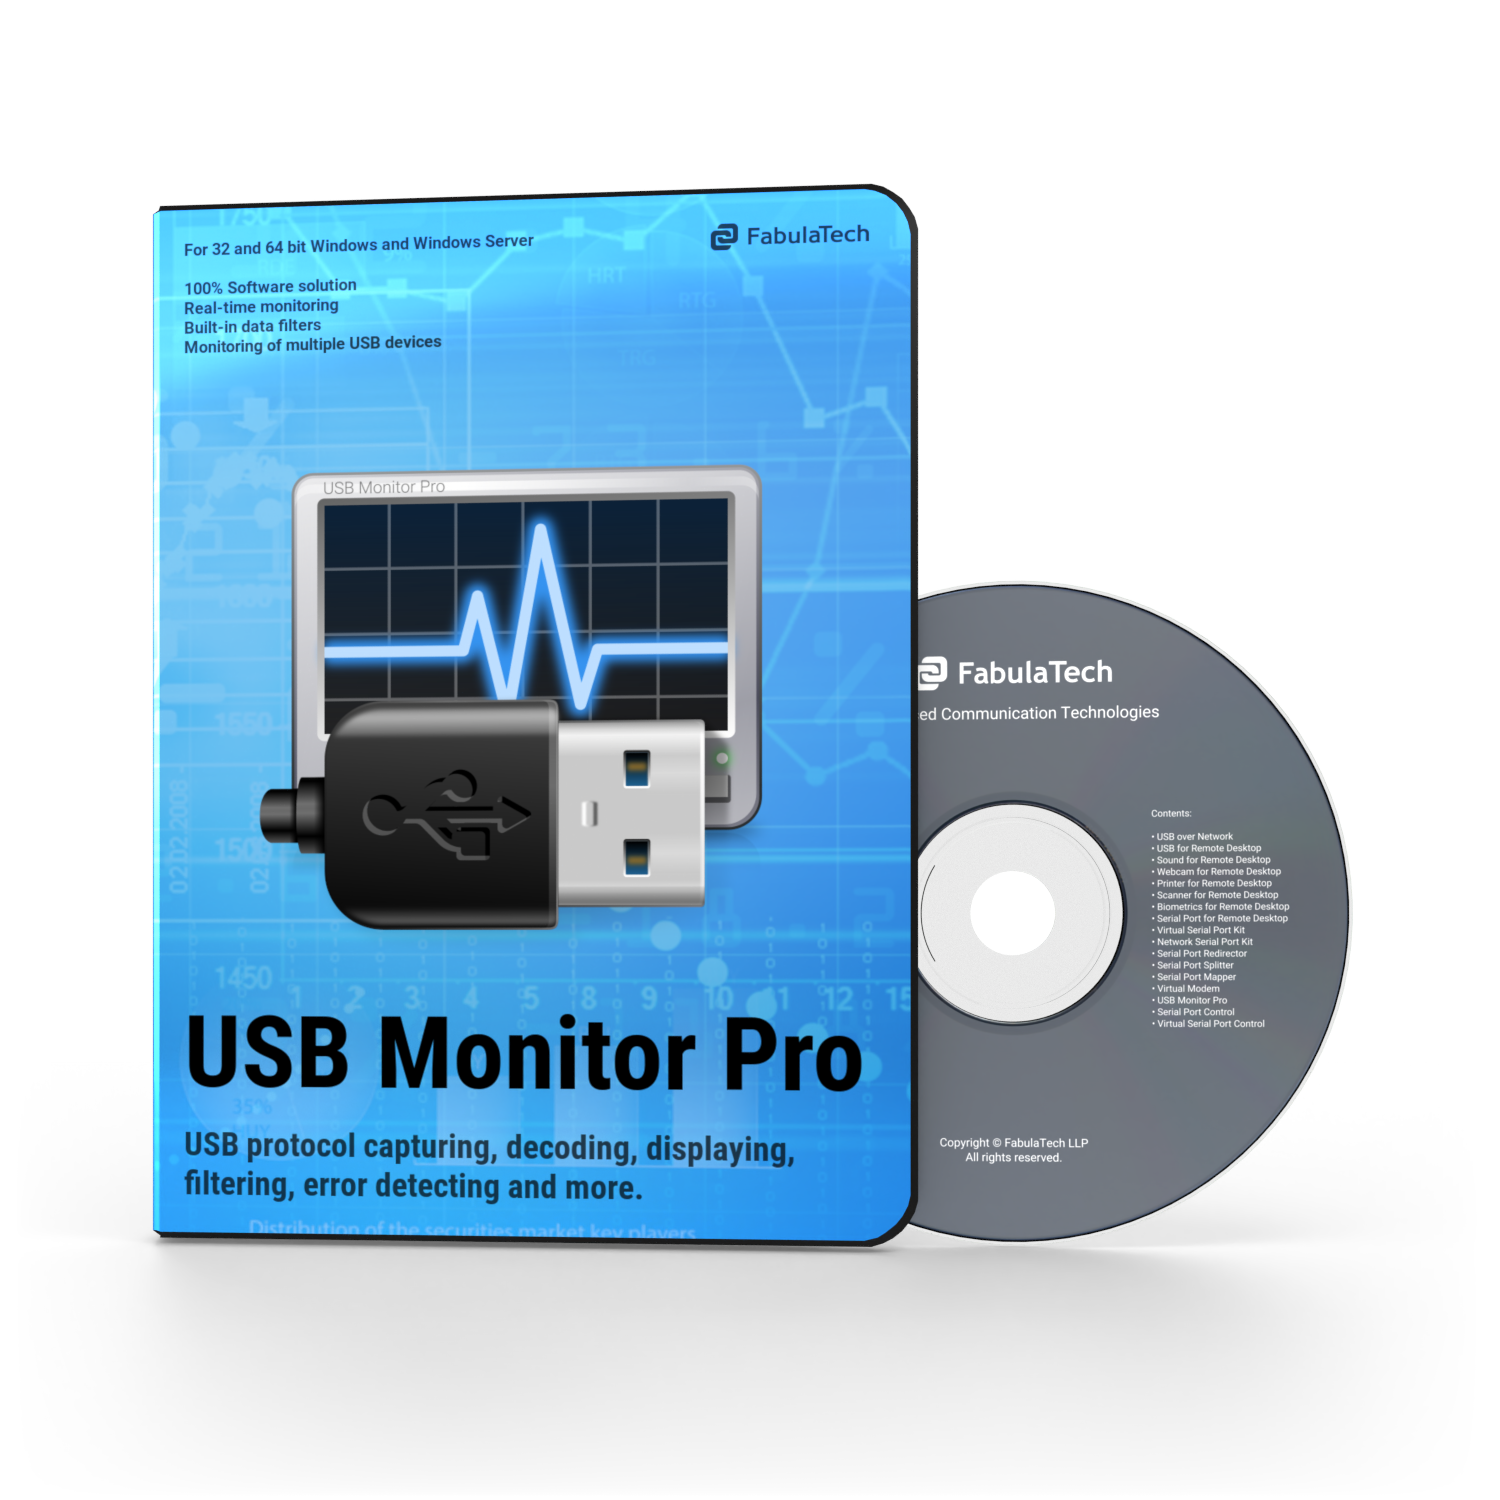 USB Monitor Pro Box and CD PNG 750x750